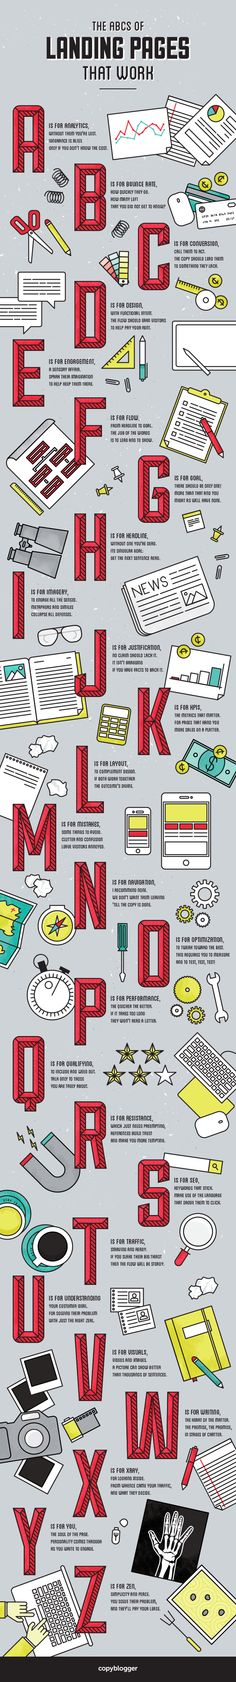 The ABCs of Landing Pages That Work | web development : UI : landing pages | infographic : 1 | ram55